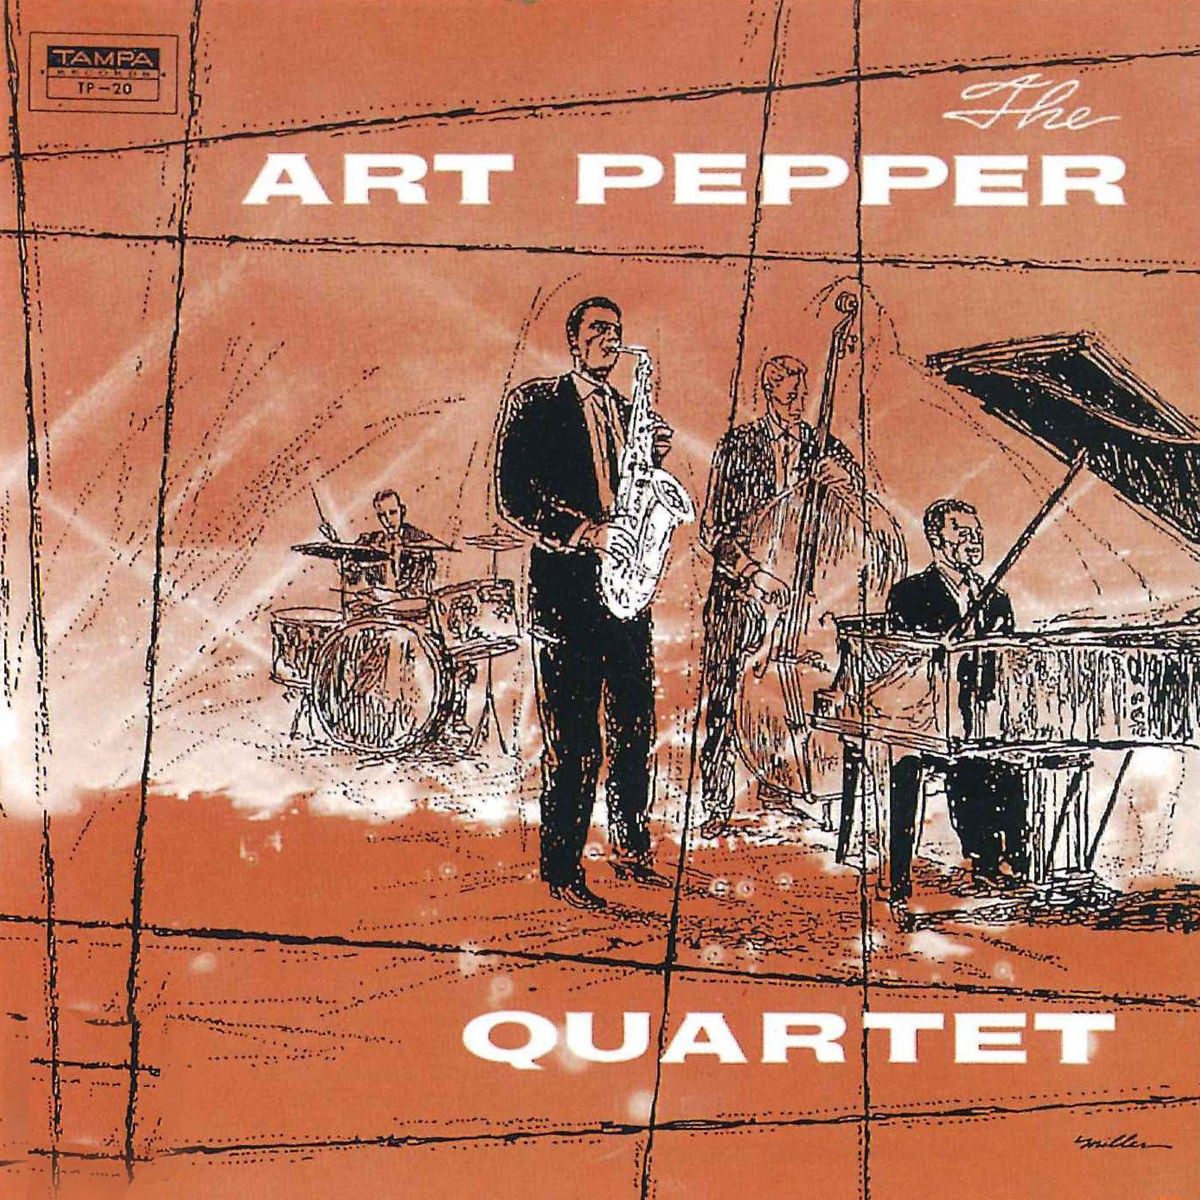 Art Pepper - The Art Pepper Quartet VINYL - 81665101380